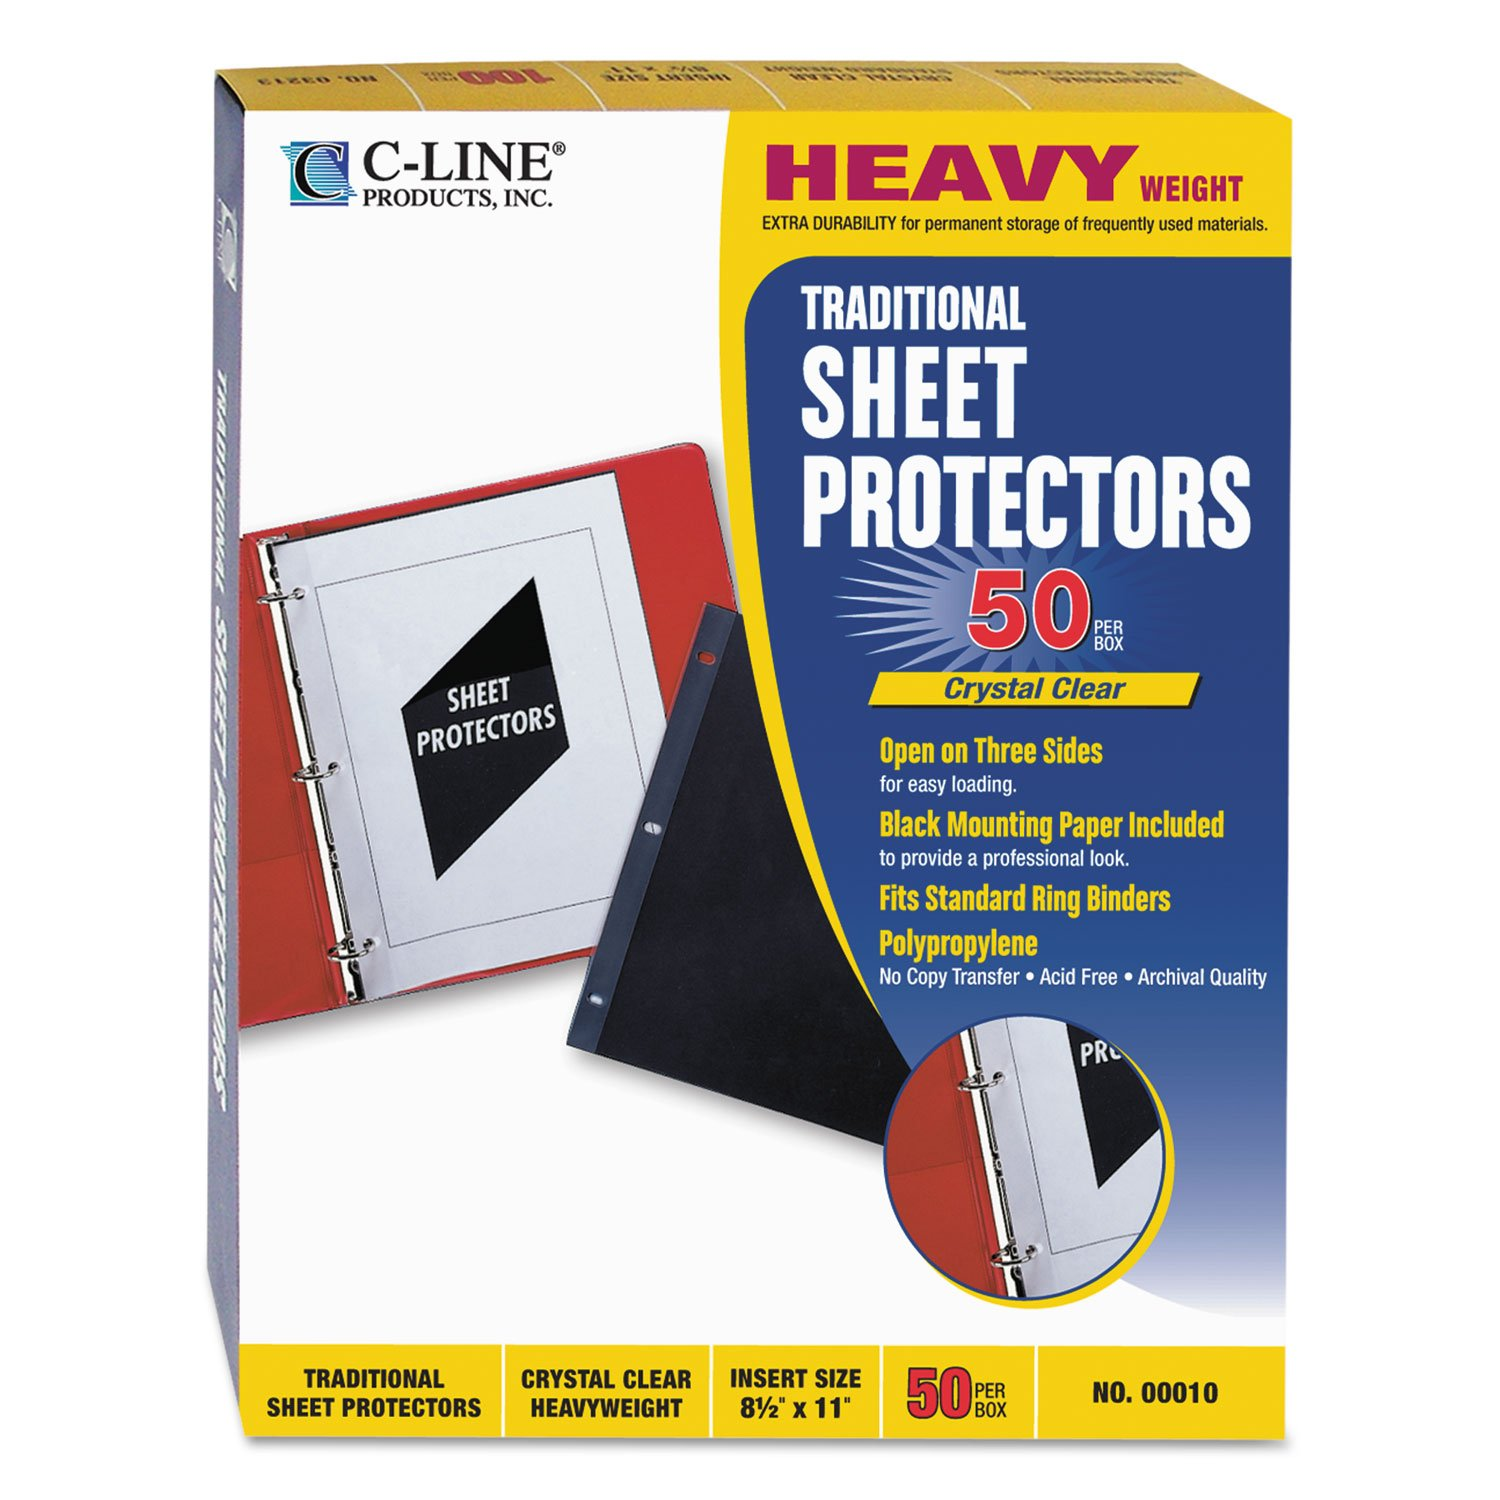 C-Line 00010 Traditional Polypropylene Sheet Protector, Heavyweight, 11 x 8 1/2, 50/BX C-LINE PRODUCTS INC.